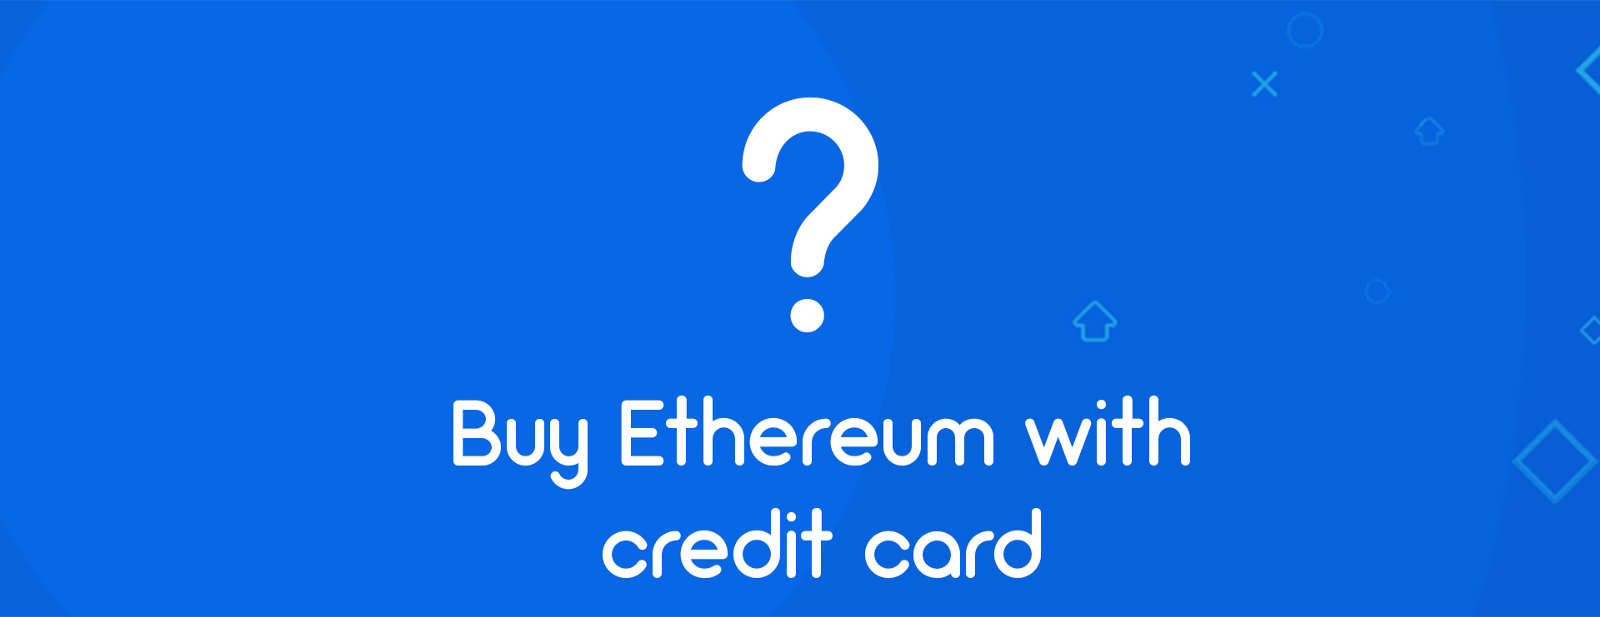 Places To Buy Ethereum With Credit Card Blocklancer Revolution Of